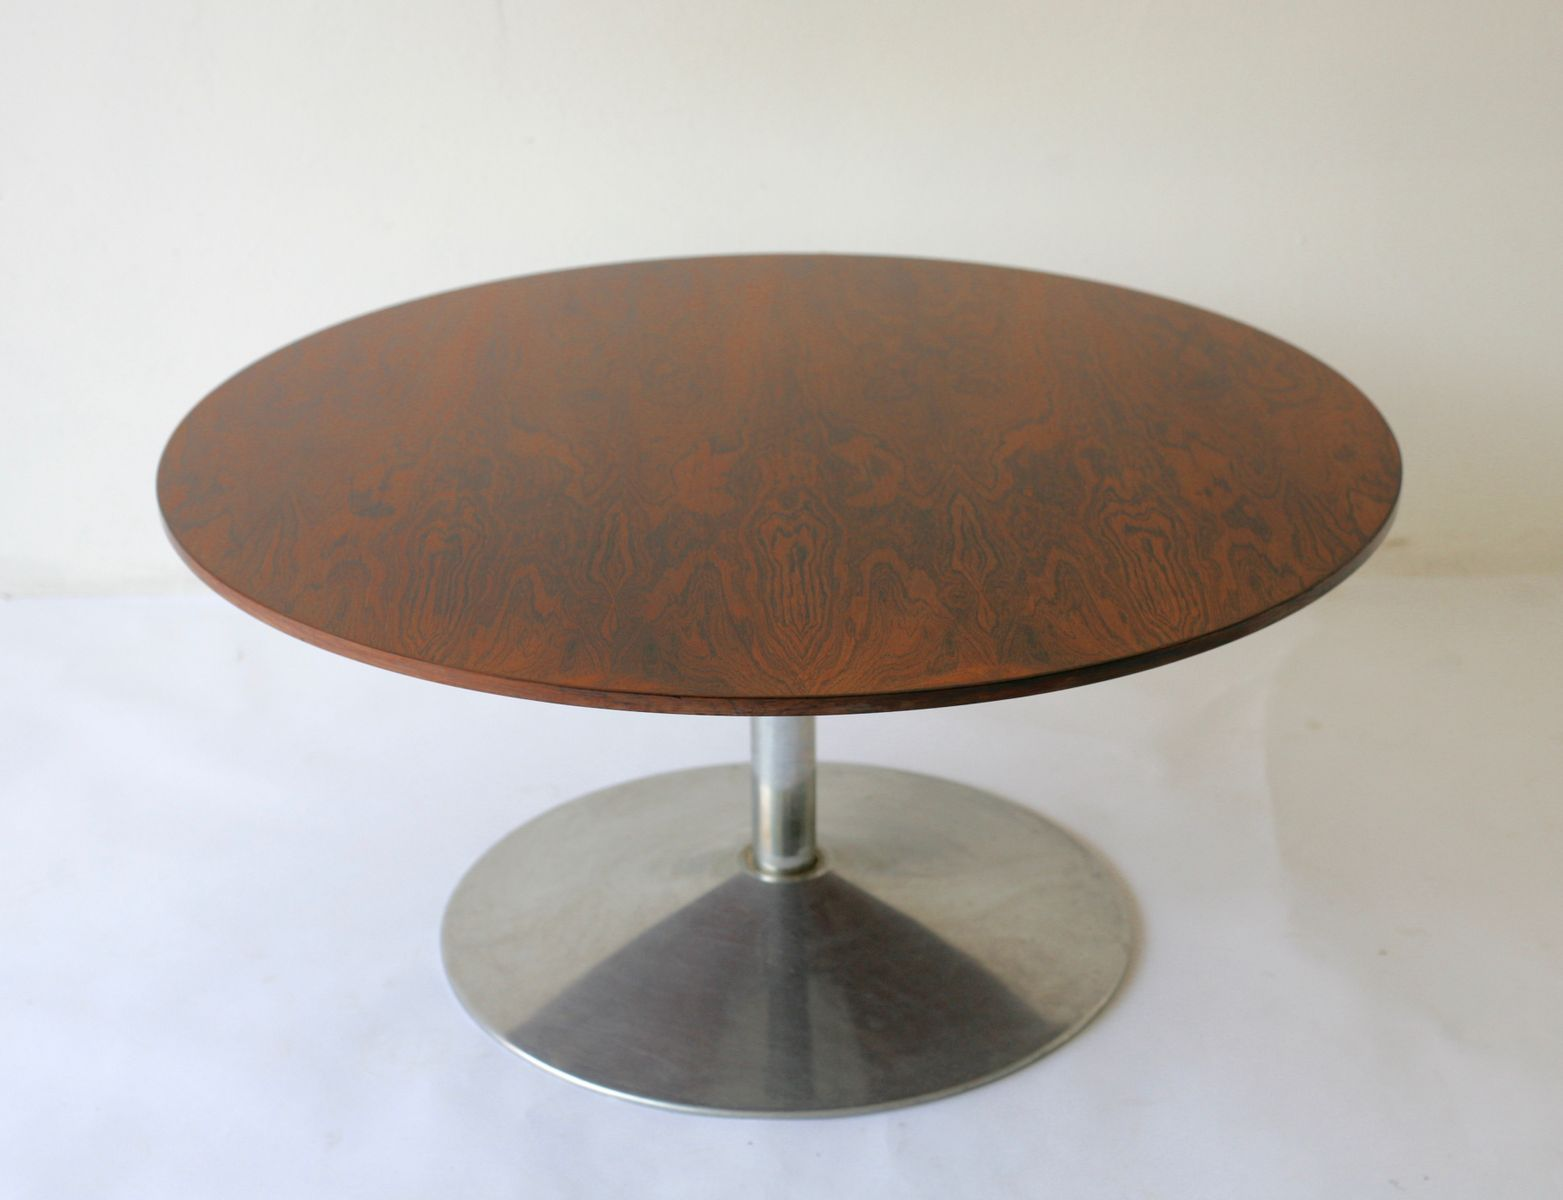 Rosewood Coffee Table By Verner Panton For Fritz Hansen 1952 For Sale At Pamono